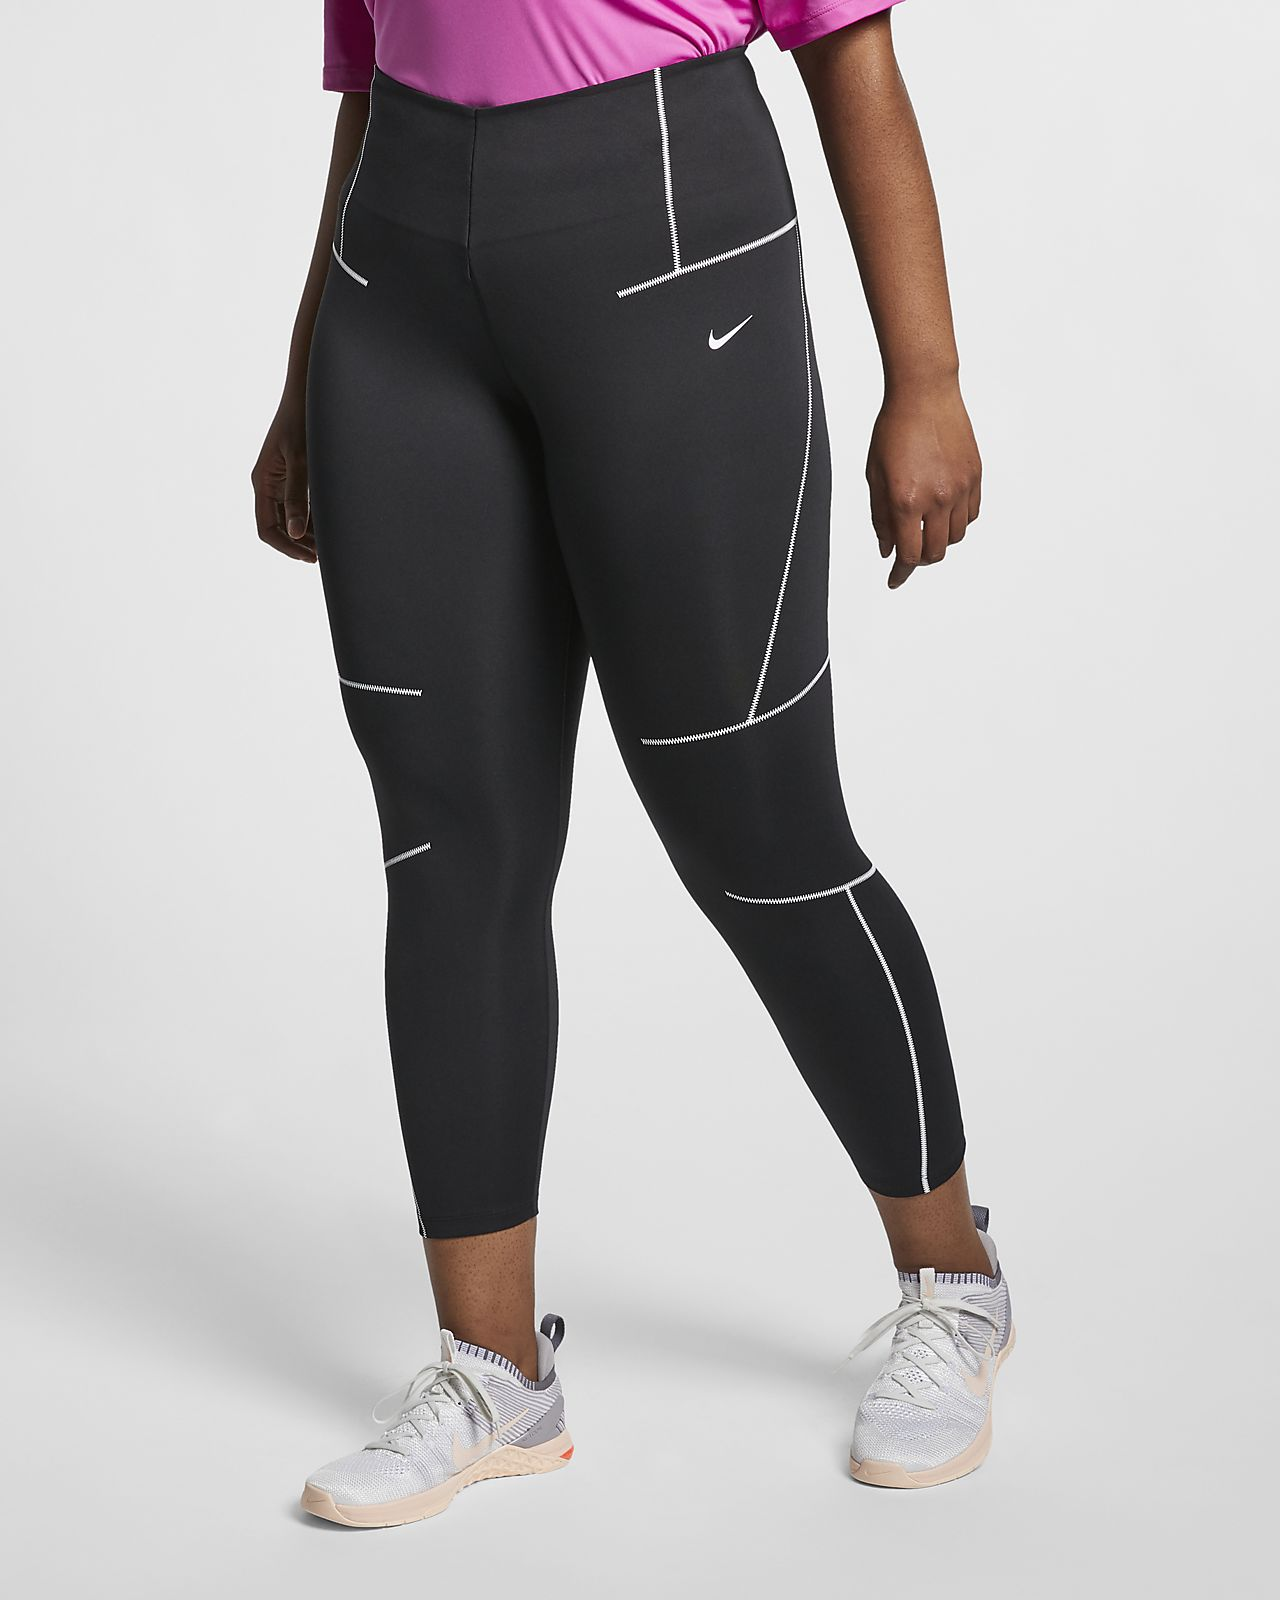 Nike Women's Training Tights (Plus Size)